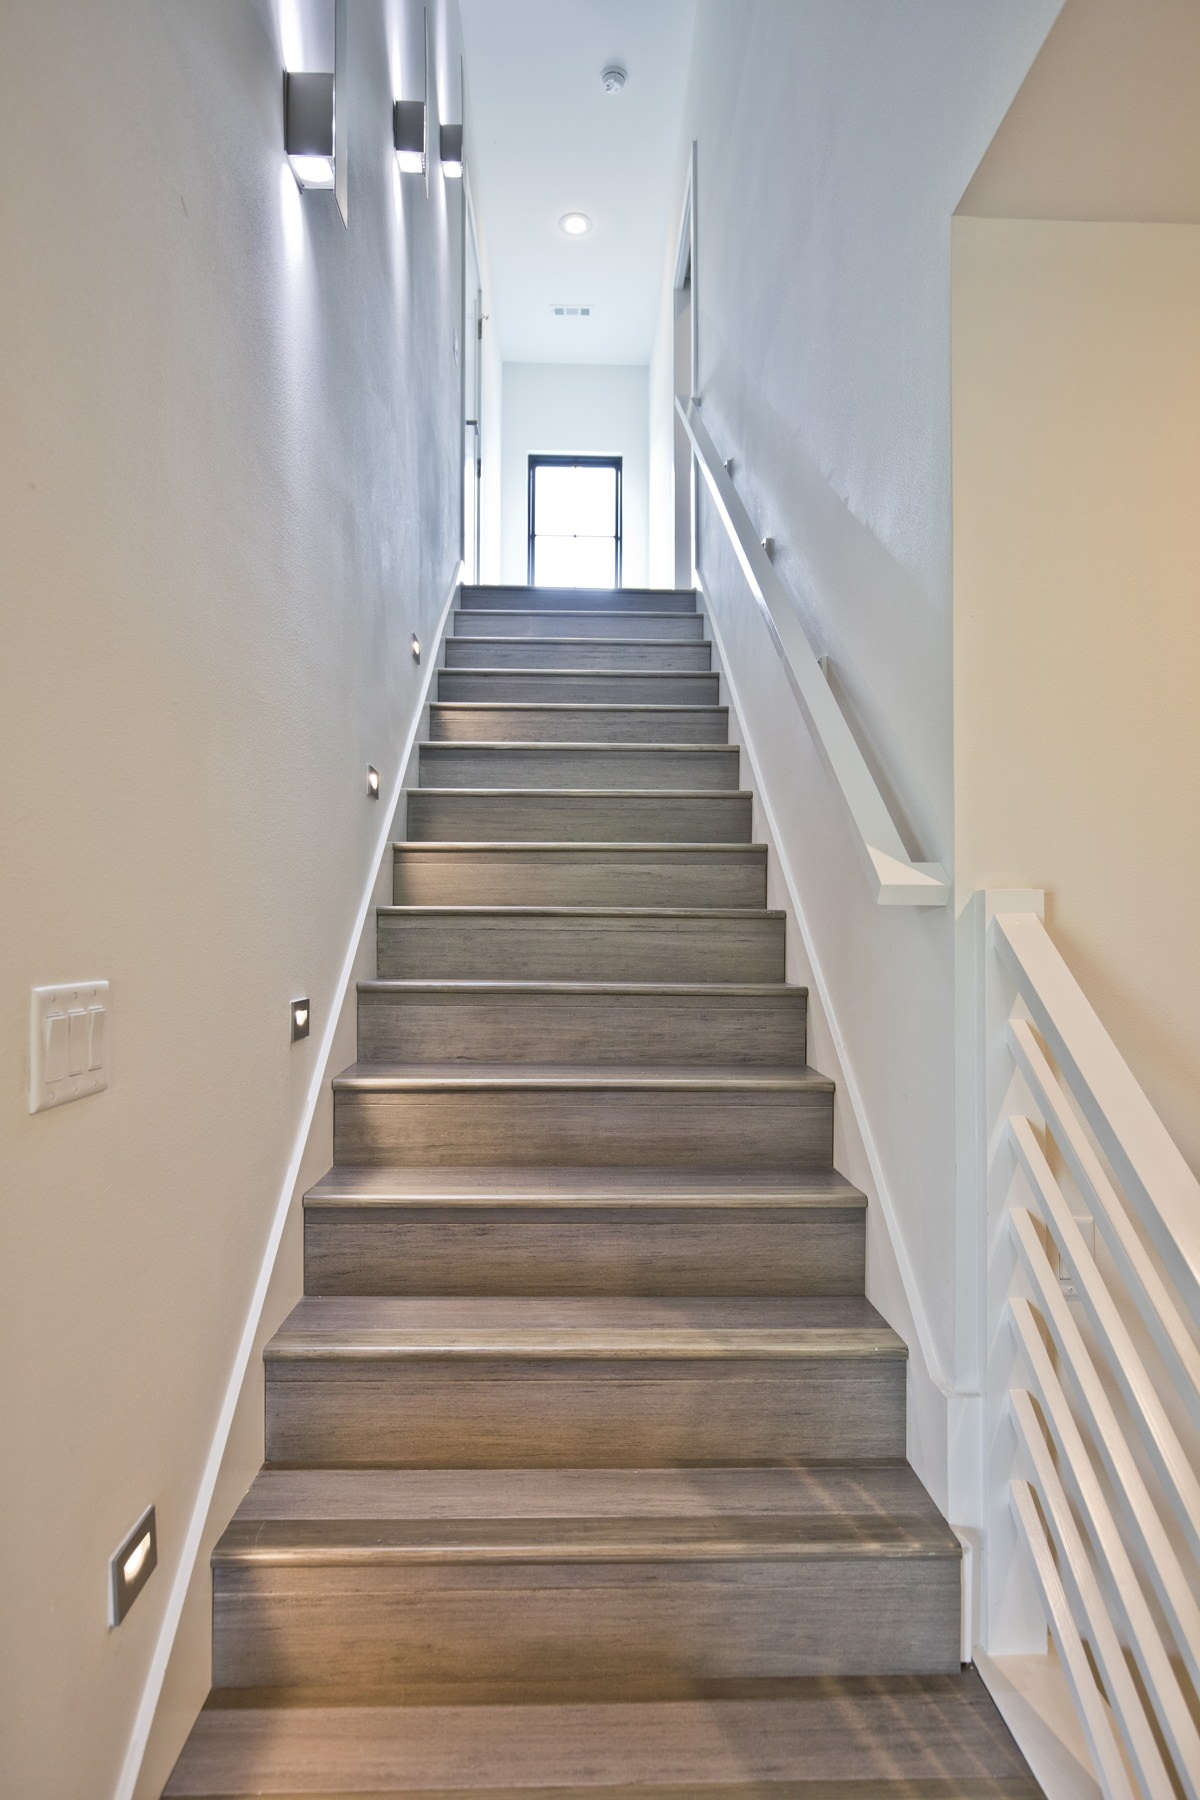 75 Beautiful Staircase Pictures Ideas September 2020 Houzz   Latest Staircase Railing Designs   Diy Modern   Handrail   Indian Style   Wrought Iron   Simple 2Nd Floor Railing Wood Stairs Iron Railing Design